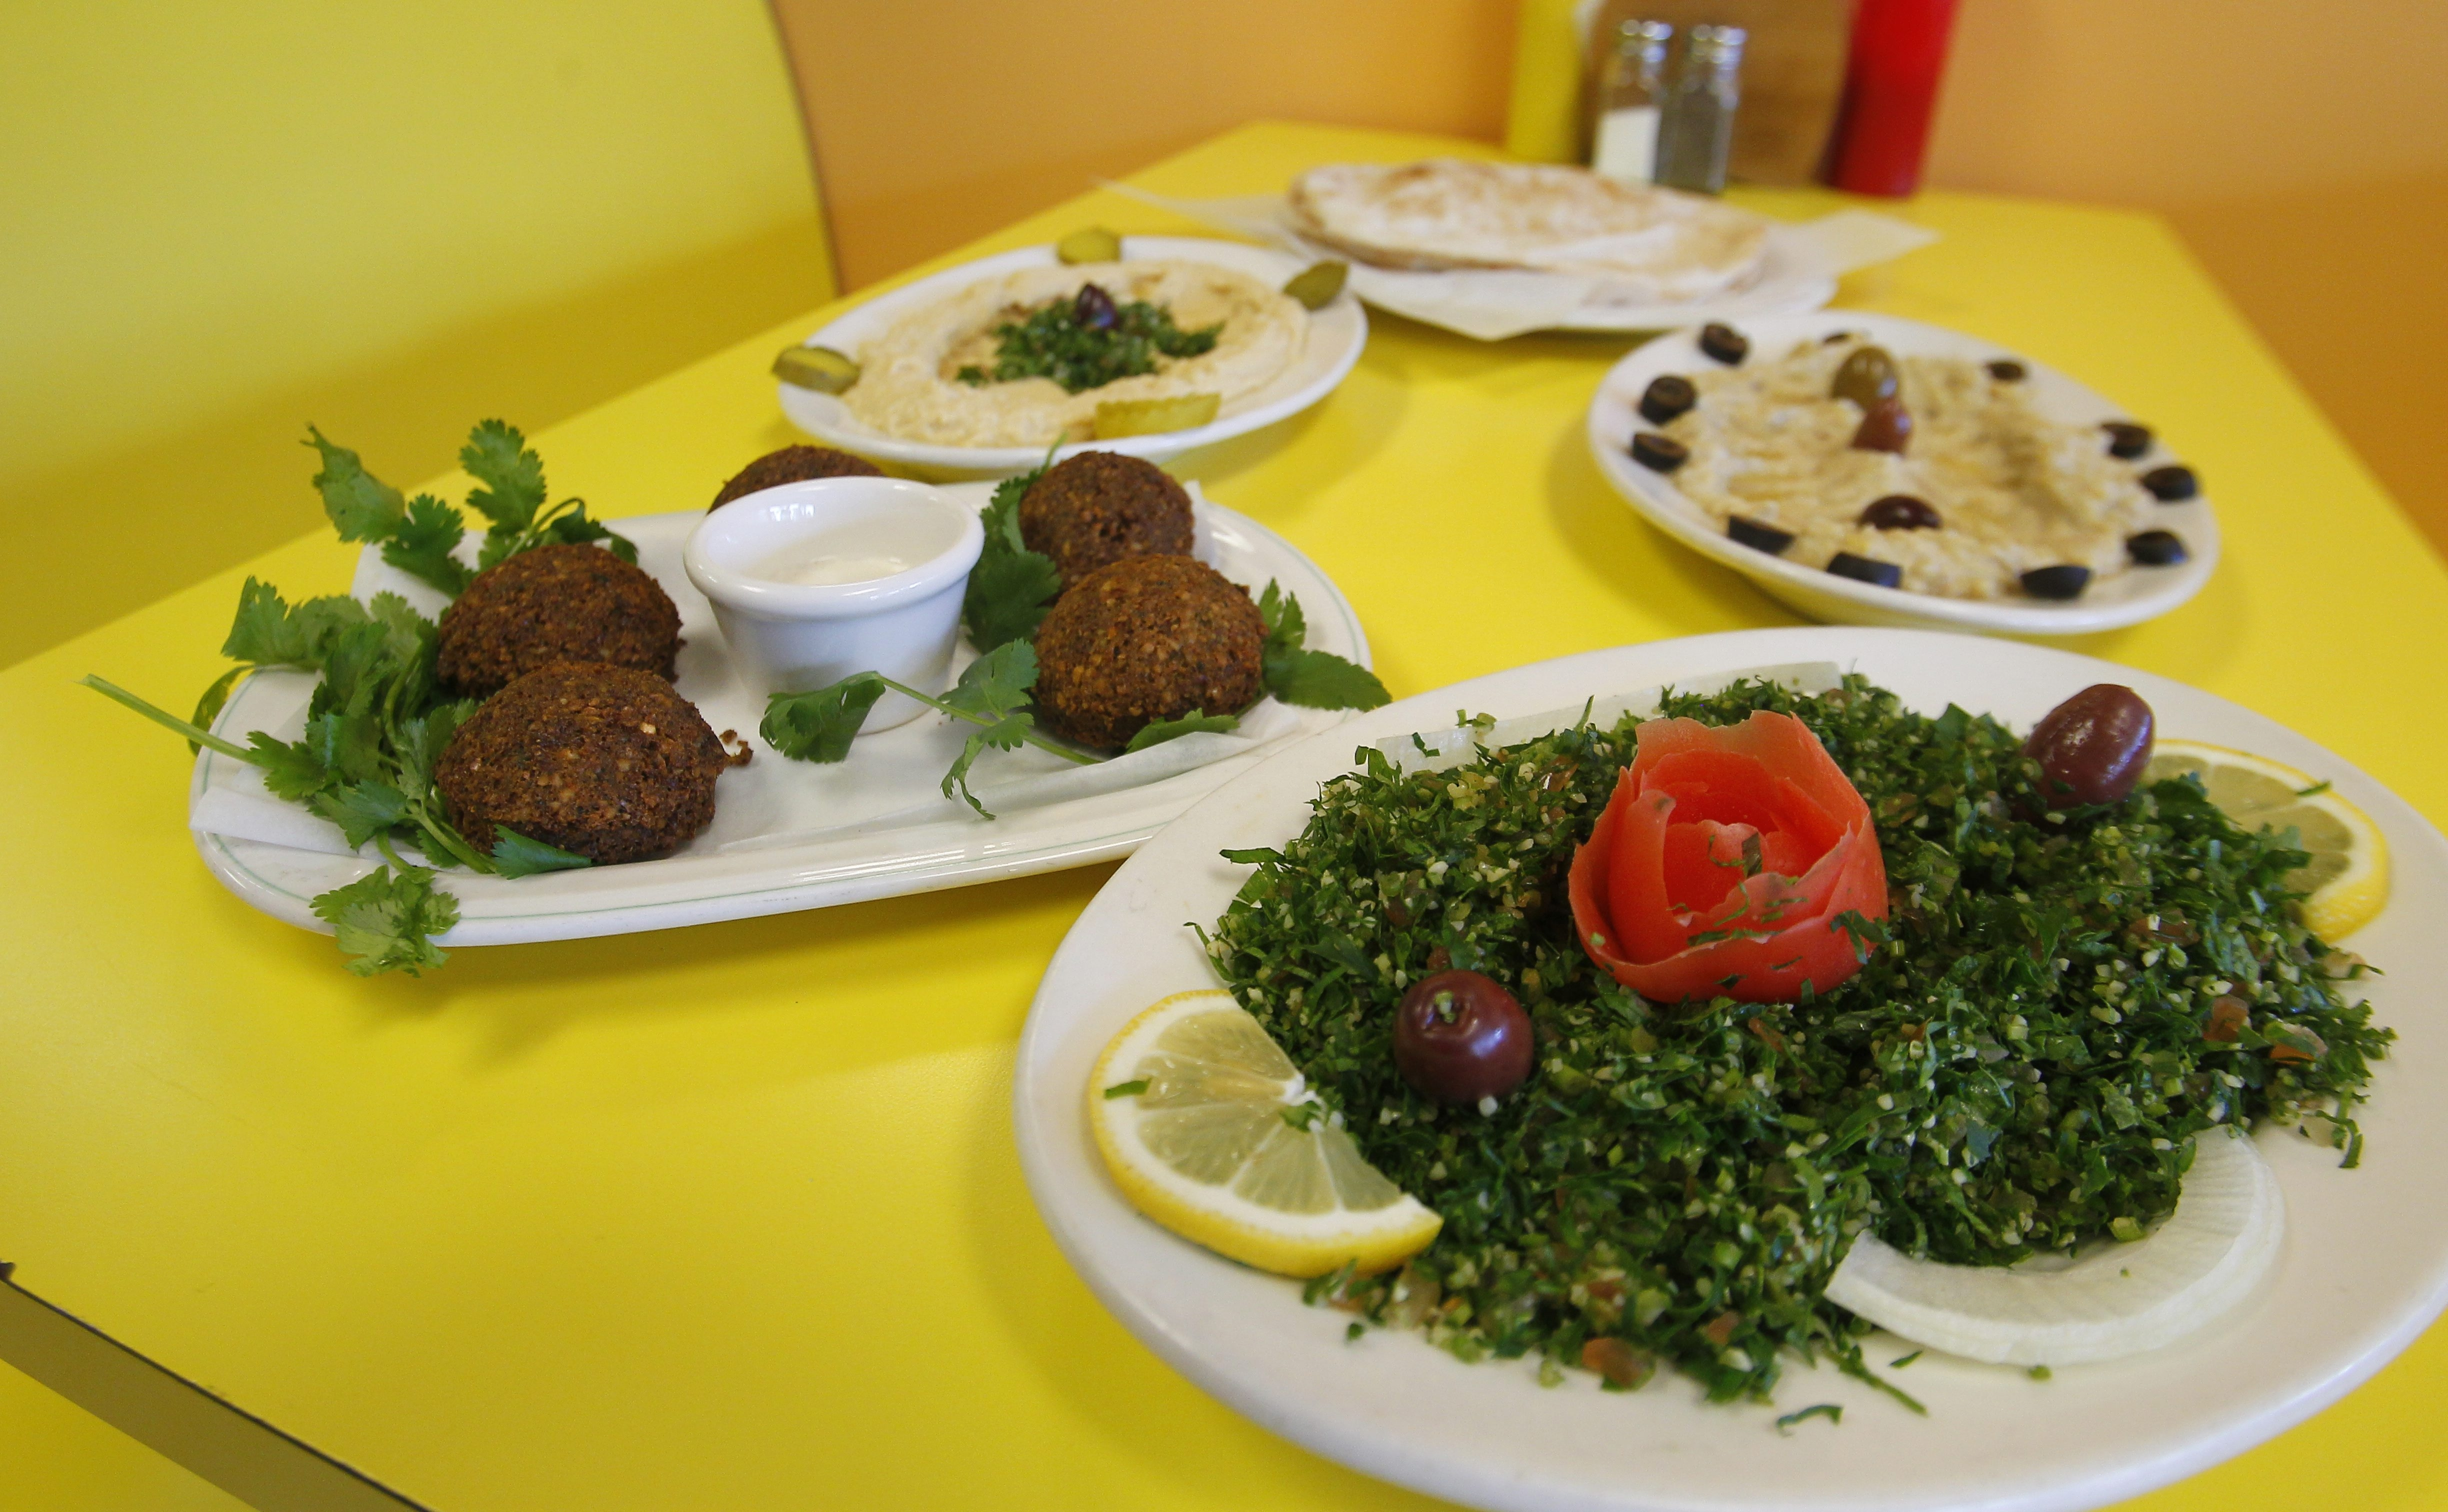 The fare at Manakeesh includes appetizer plates of falafel, chickpea hummus and roasted eggplant babaganoush spreads. The tabbouleh has more parsley and scallion than tomato and bulgur wheat. (John Hickey/Buffalo News)